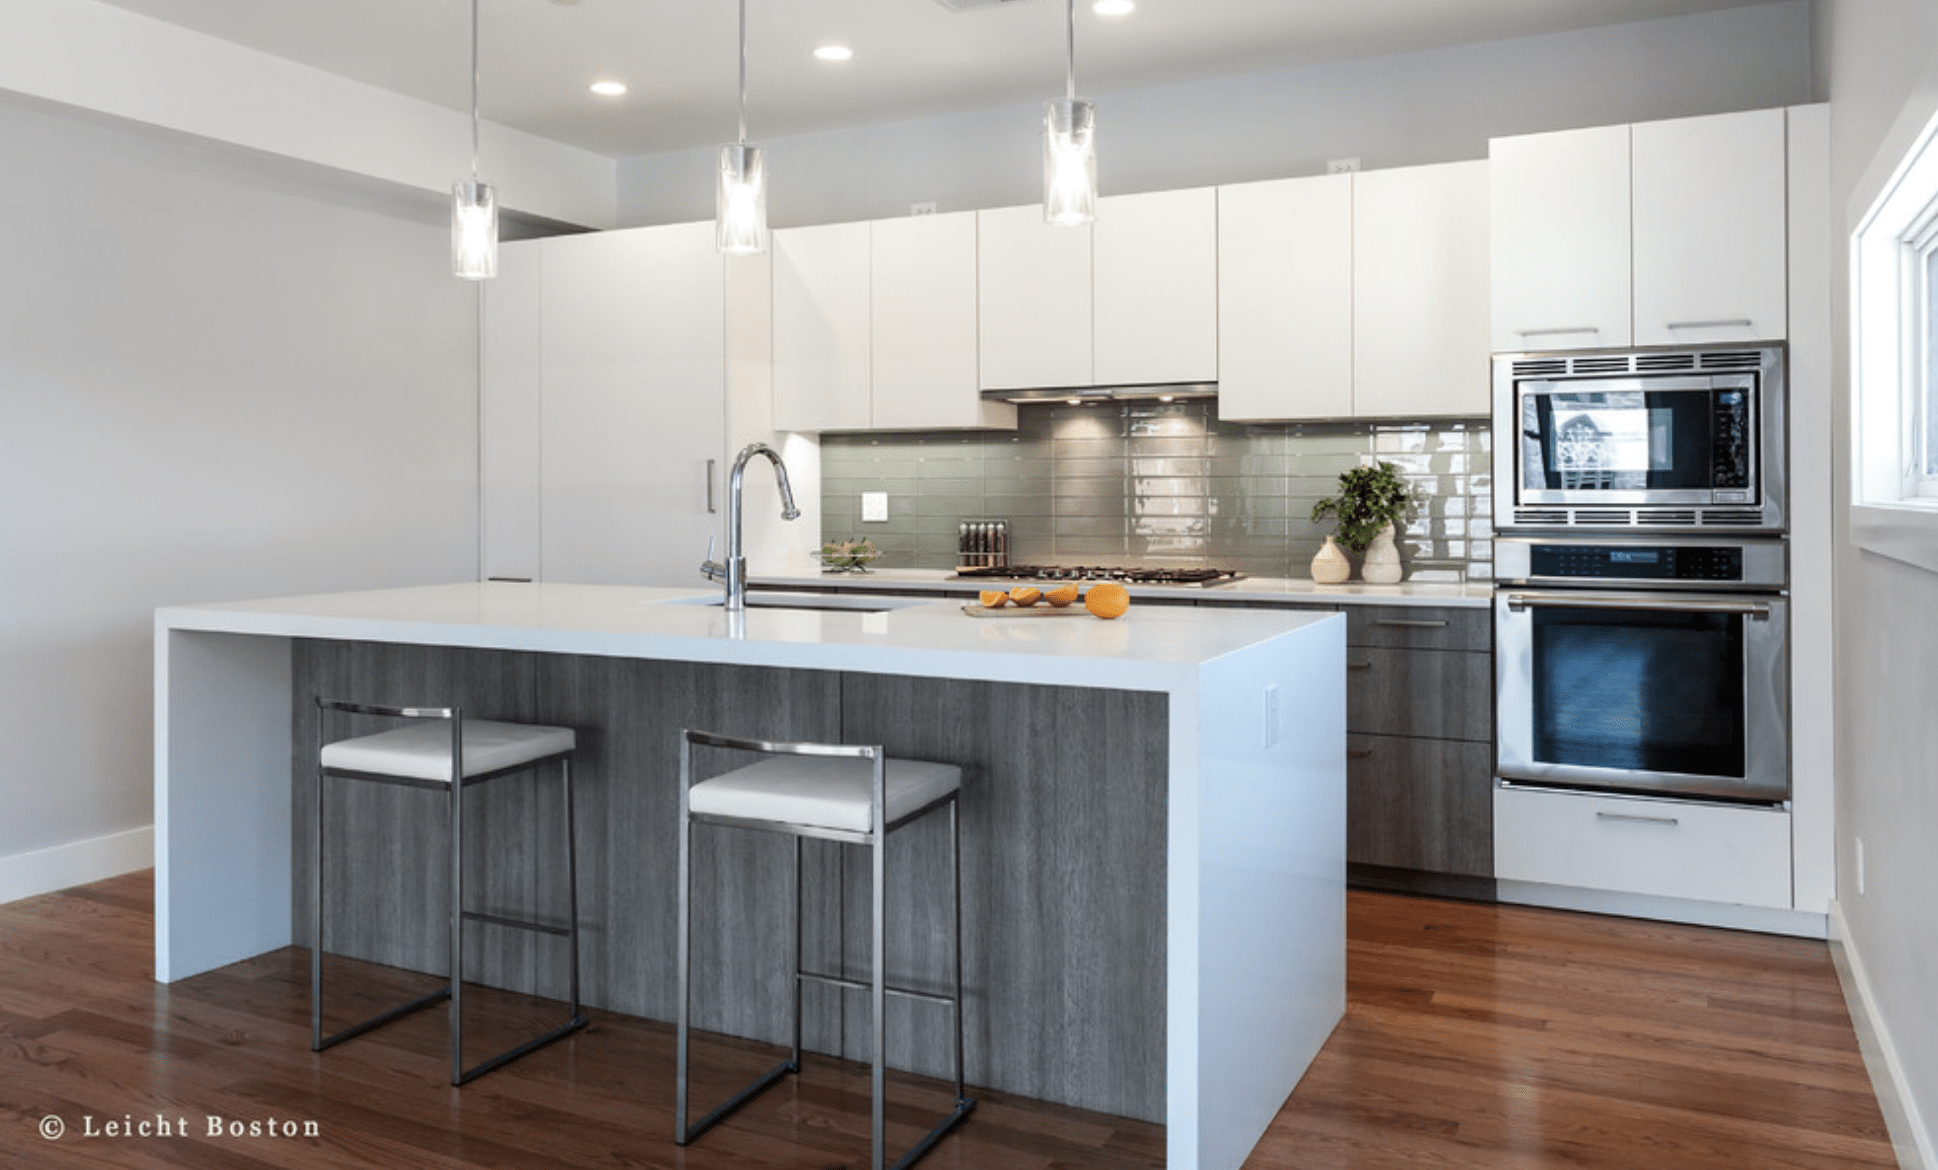 Images Of Modern Kitchens Most Popular Modern Kitchens On Houzz